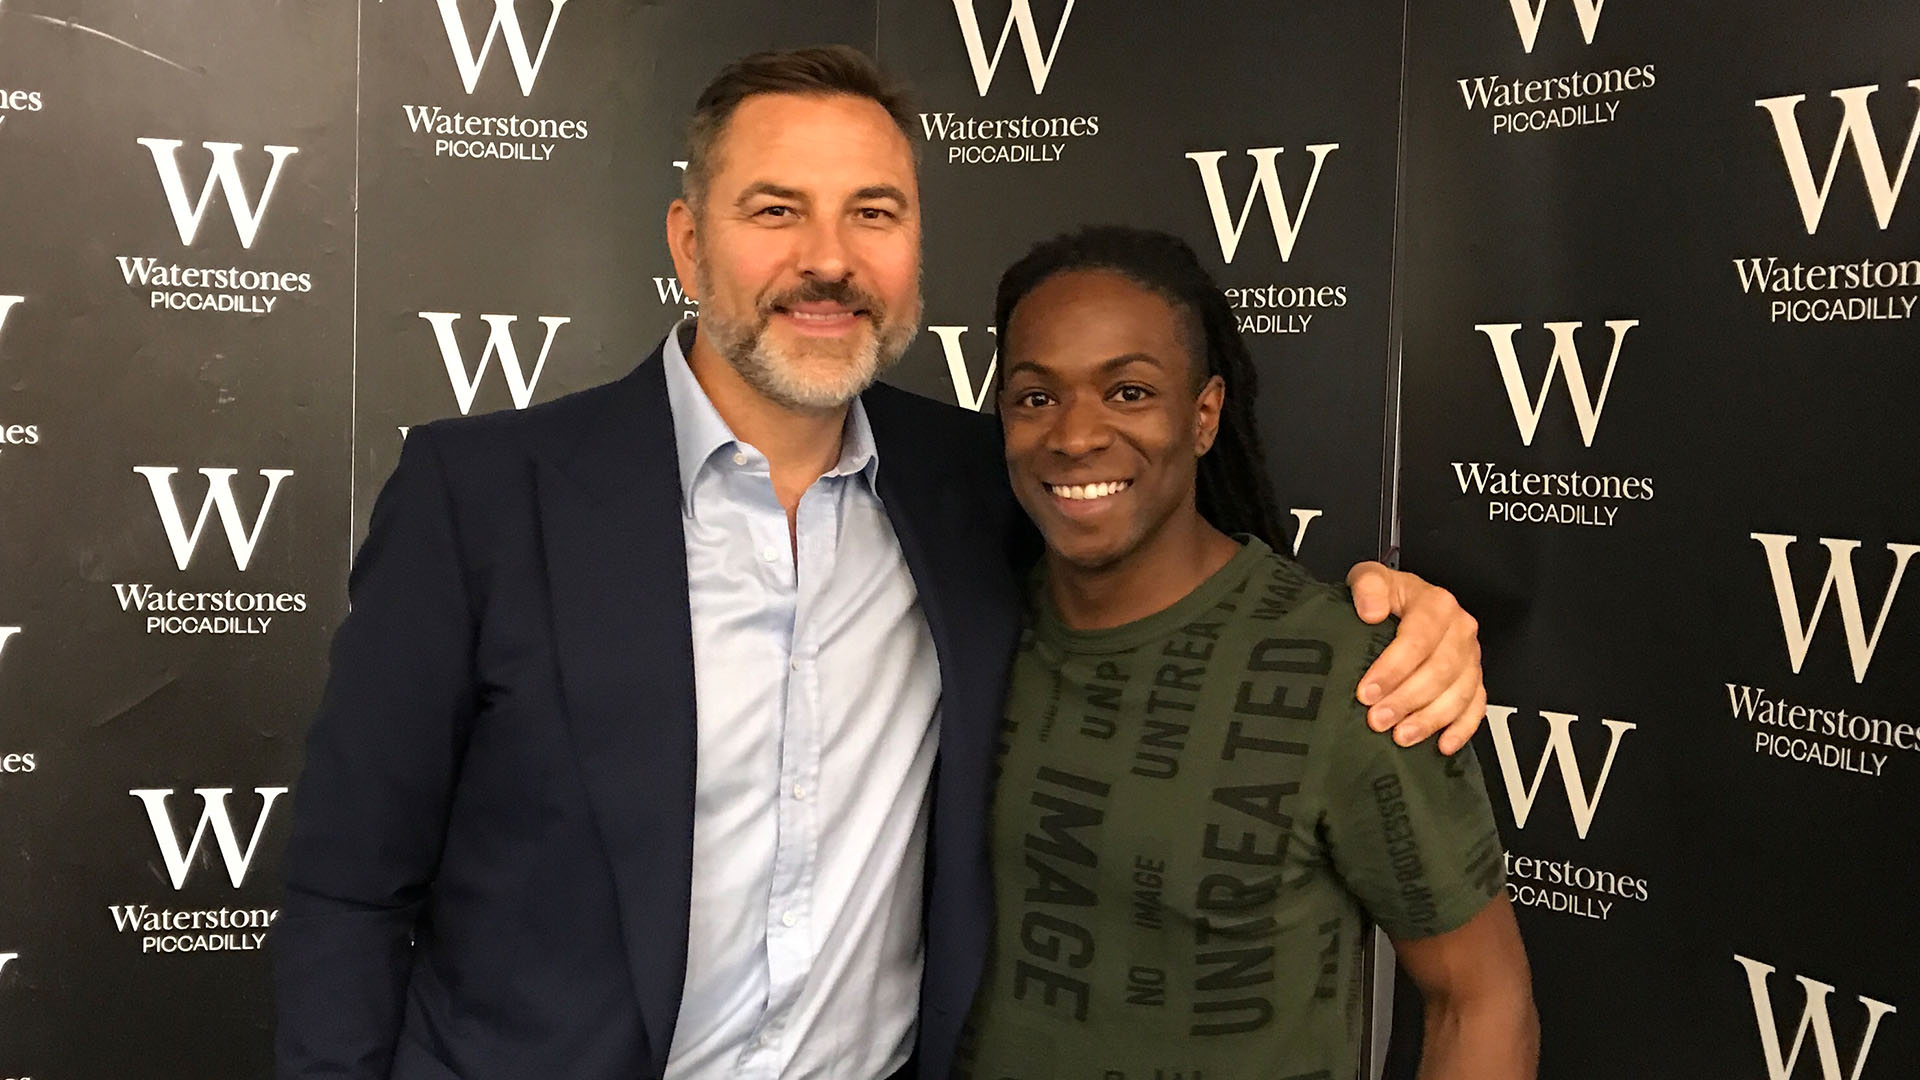 David Walliams and British TV Presenter Nigel Clarke at The World's Worst Children Book Signing in London on May 31st 2017